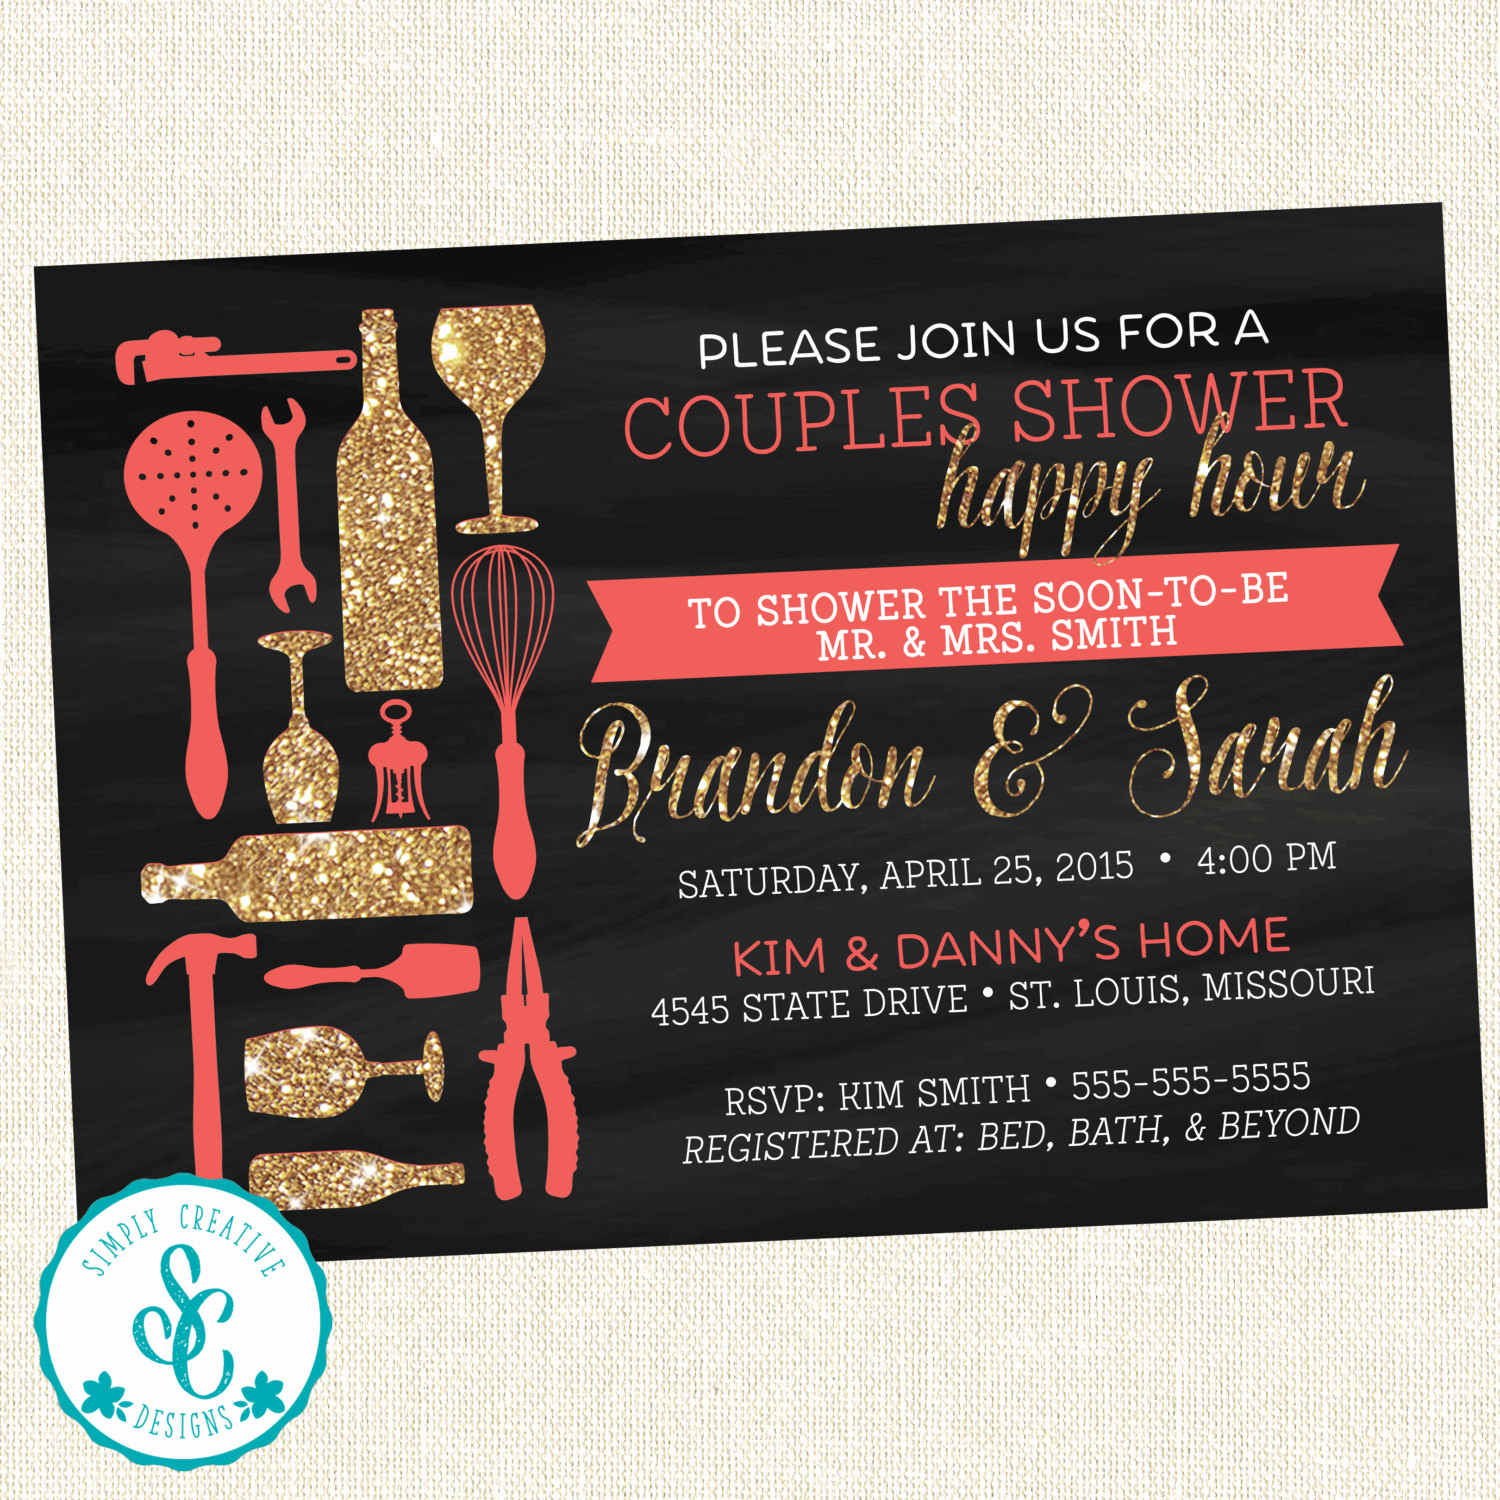 Happy Hour Invitation Wording Lovely Bridal Shower Invitation Couples Happy Hour Shower Invite